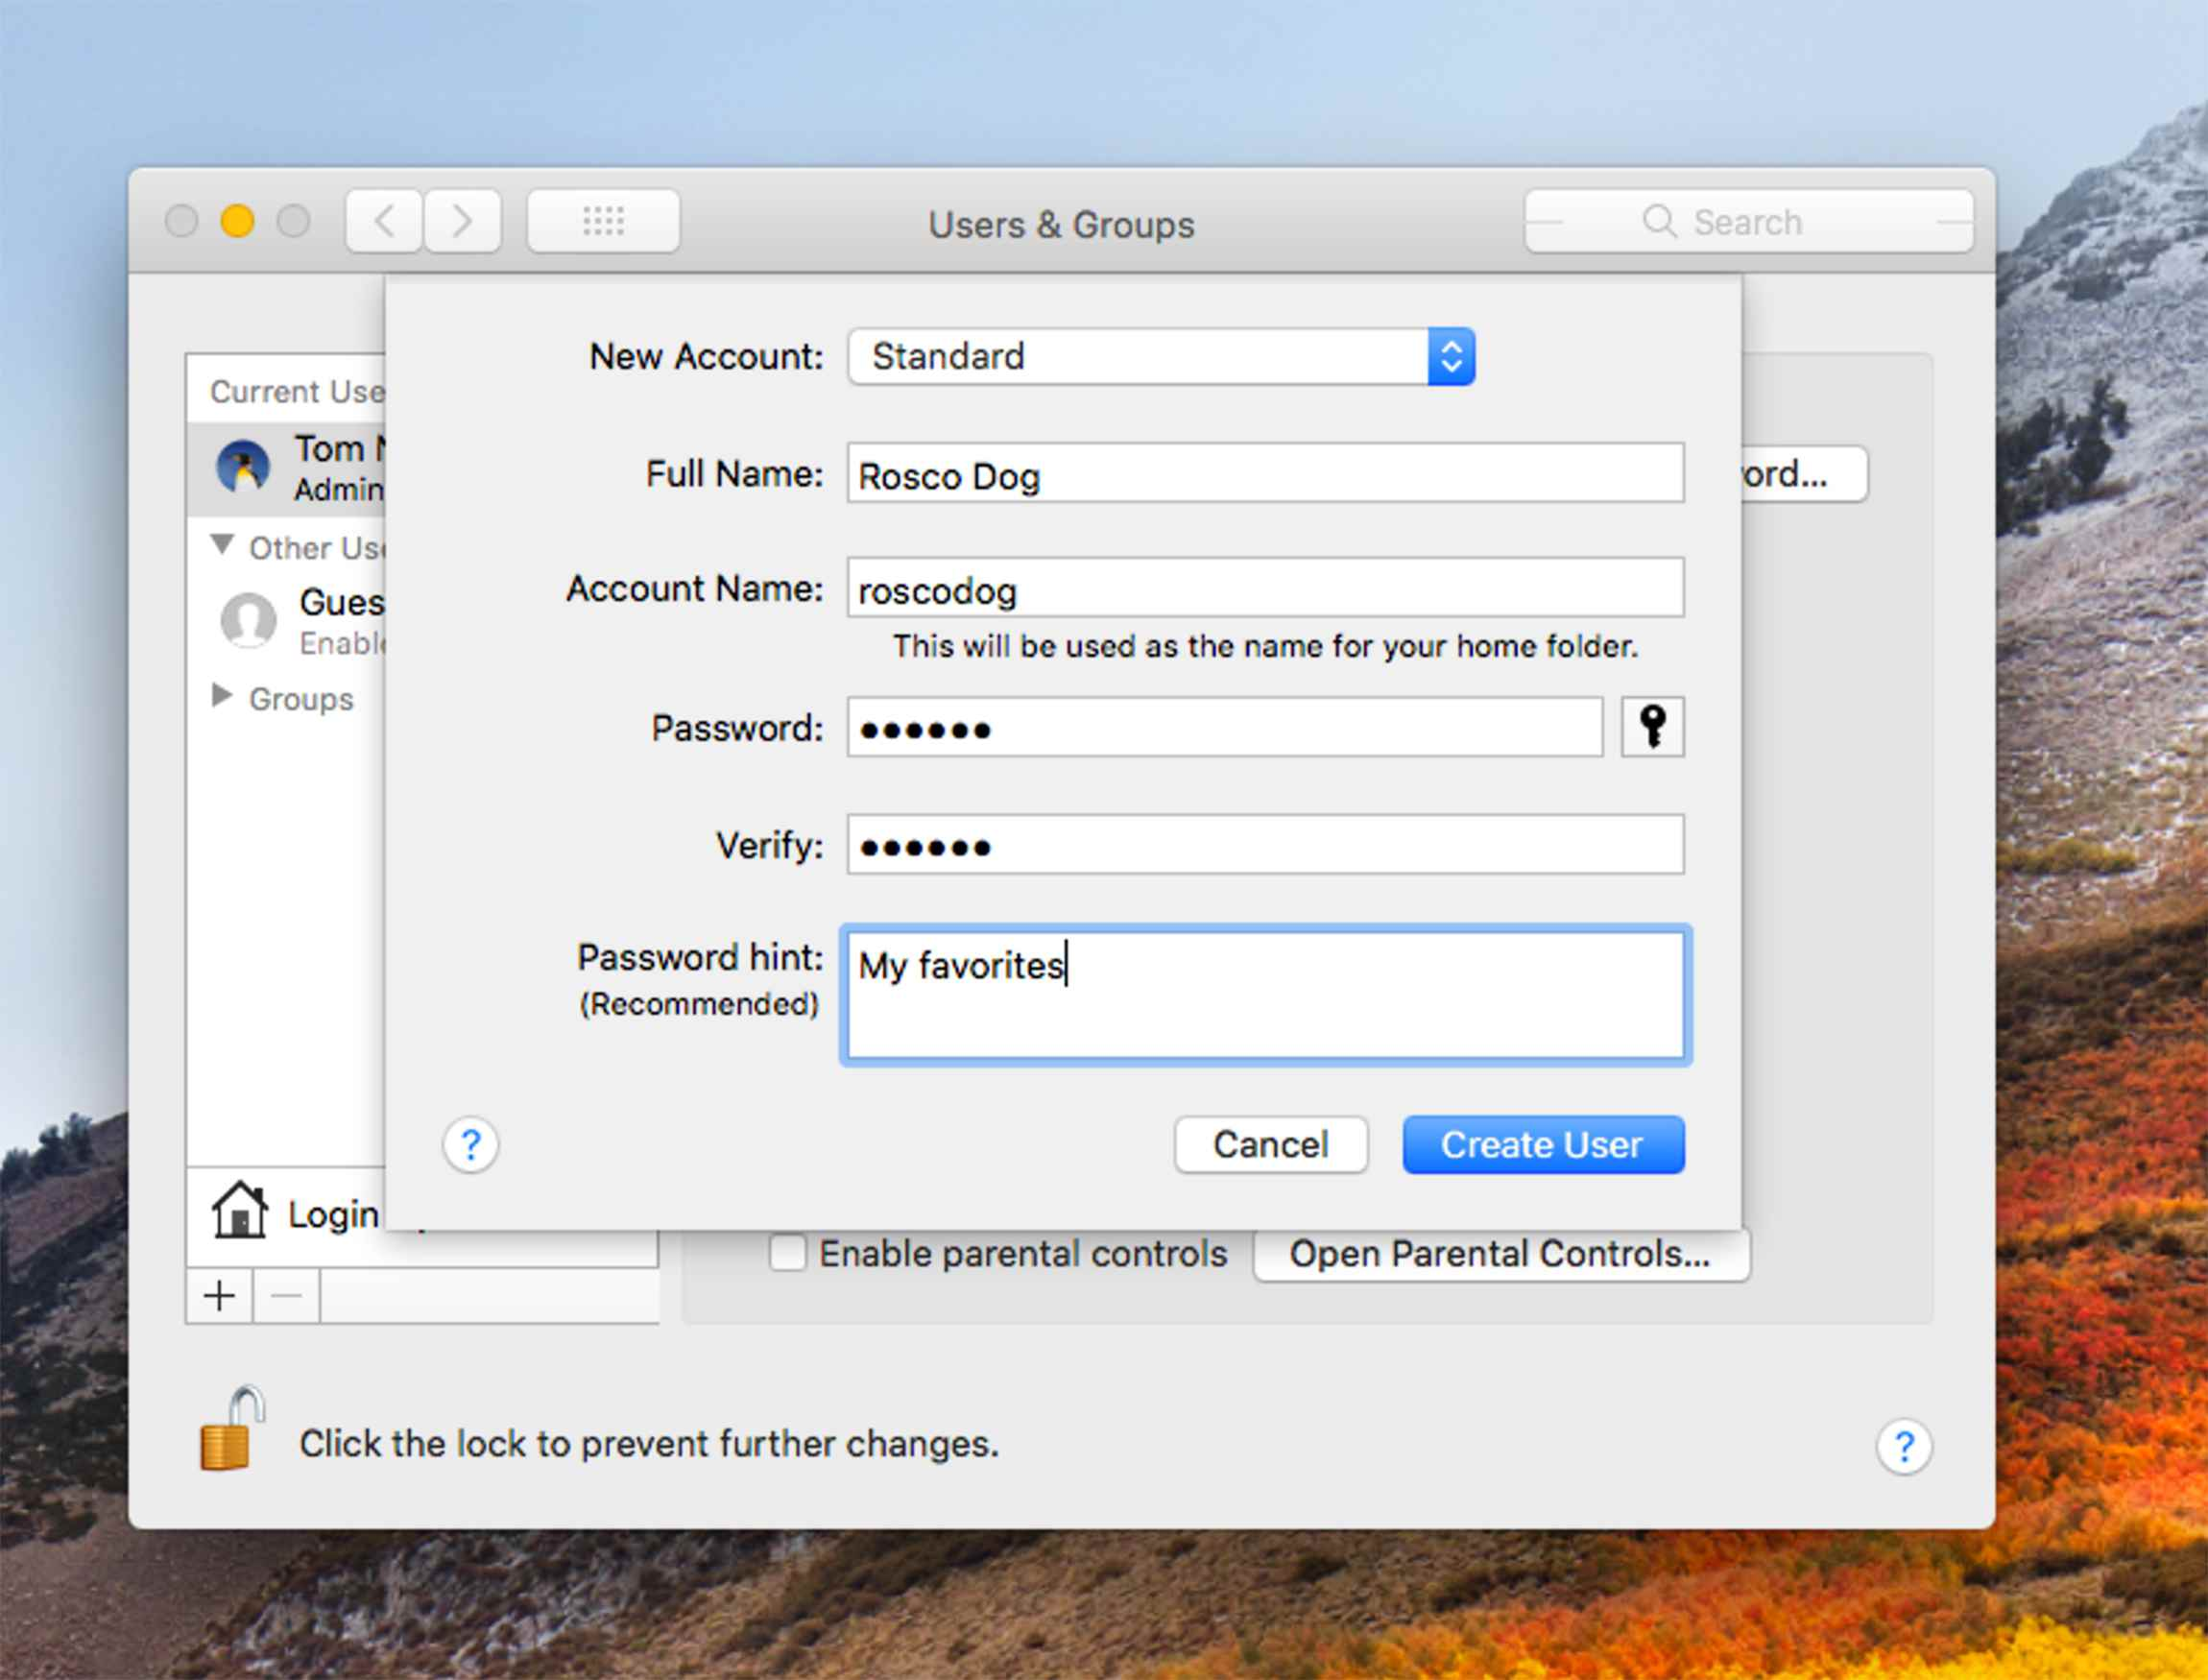 Standard account creation in macOS